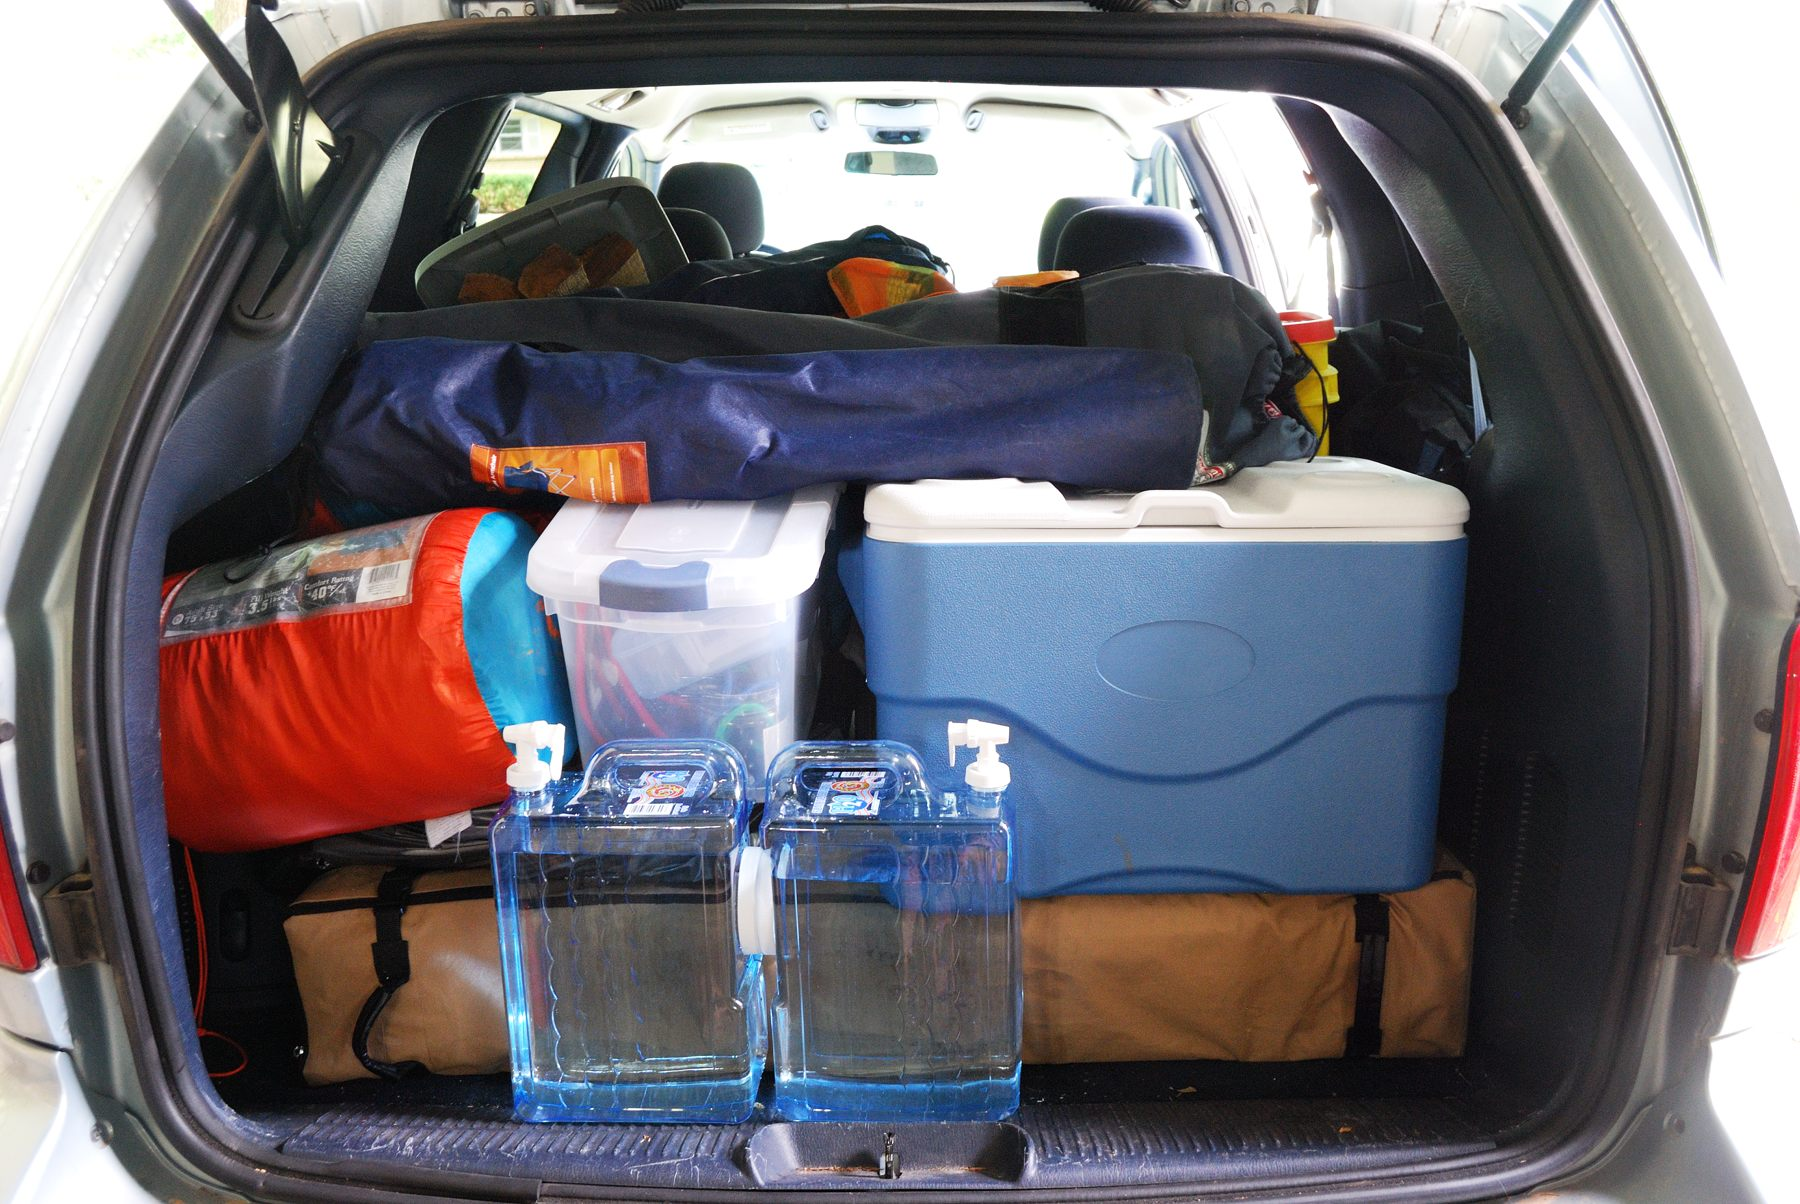 Packing for car camping – we are organized!